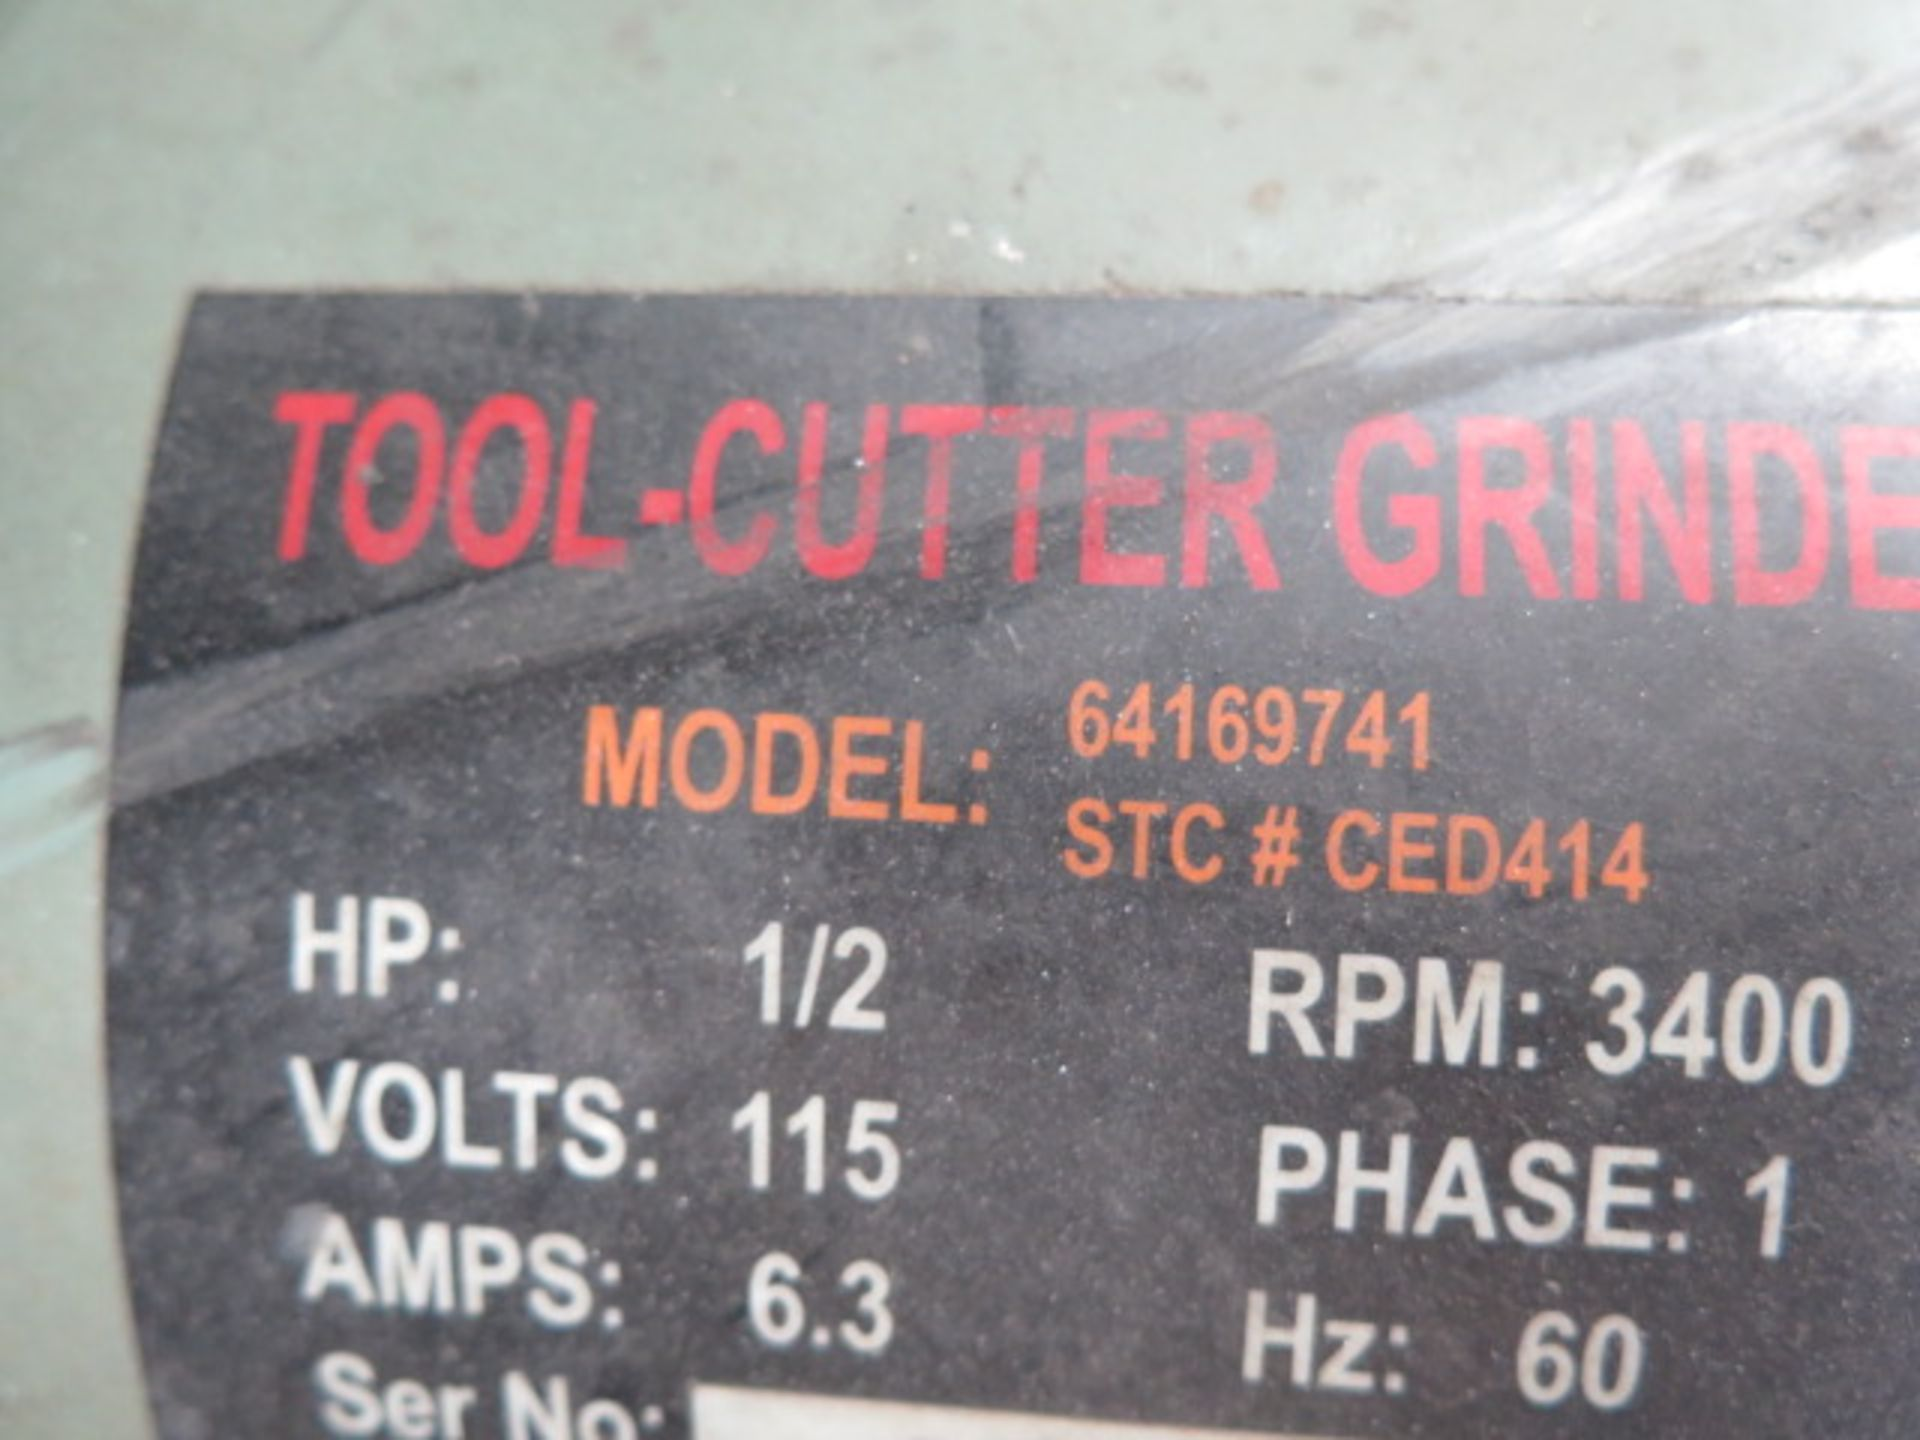 Import Carbide Tool Grinder (NEEDS REPAIR) (SOLD AS-IS - NO WARRANTY) - Image 6 of 6